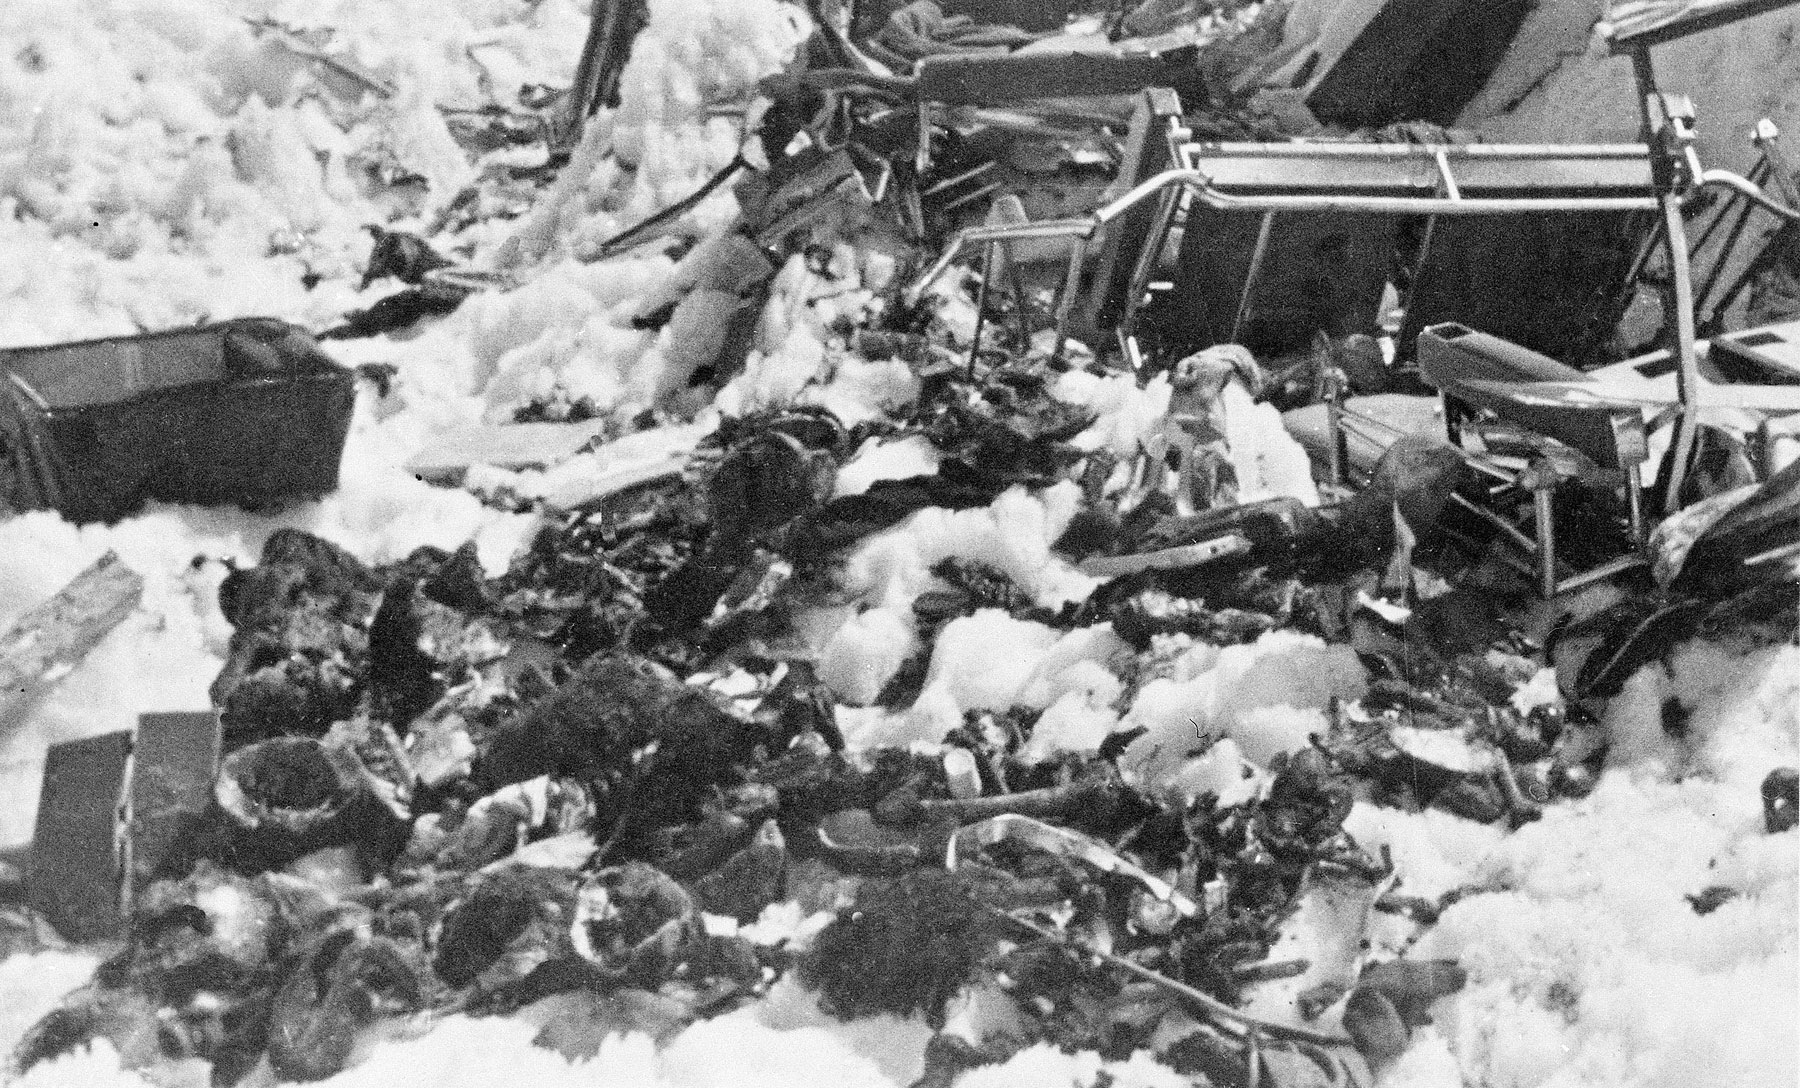 Part of the wreckage of Uruguayan Air Force Flight 571, seen Dec. 23, 1972.